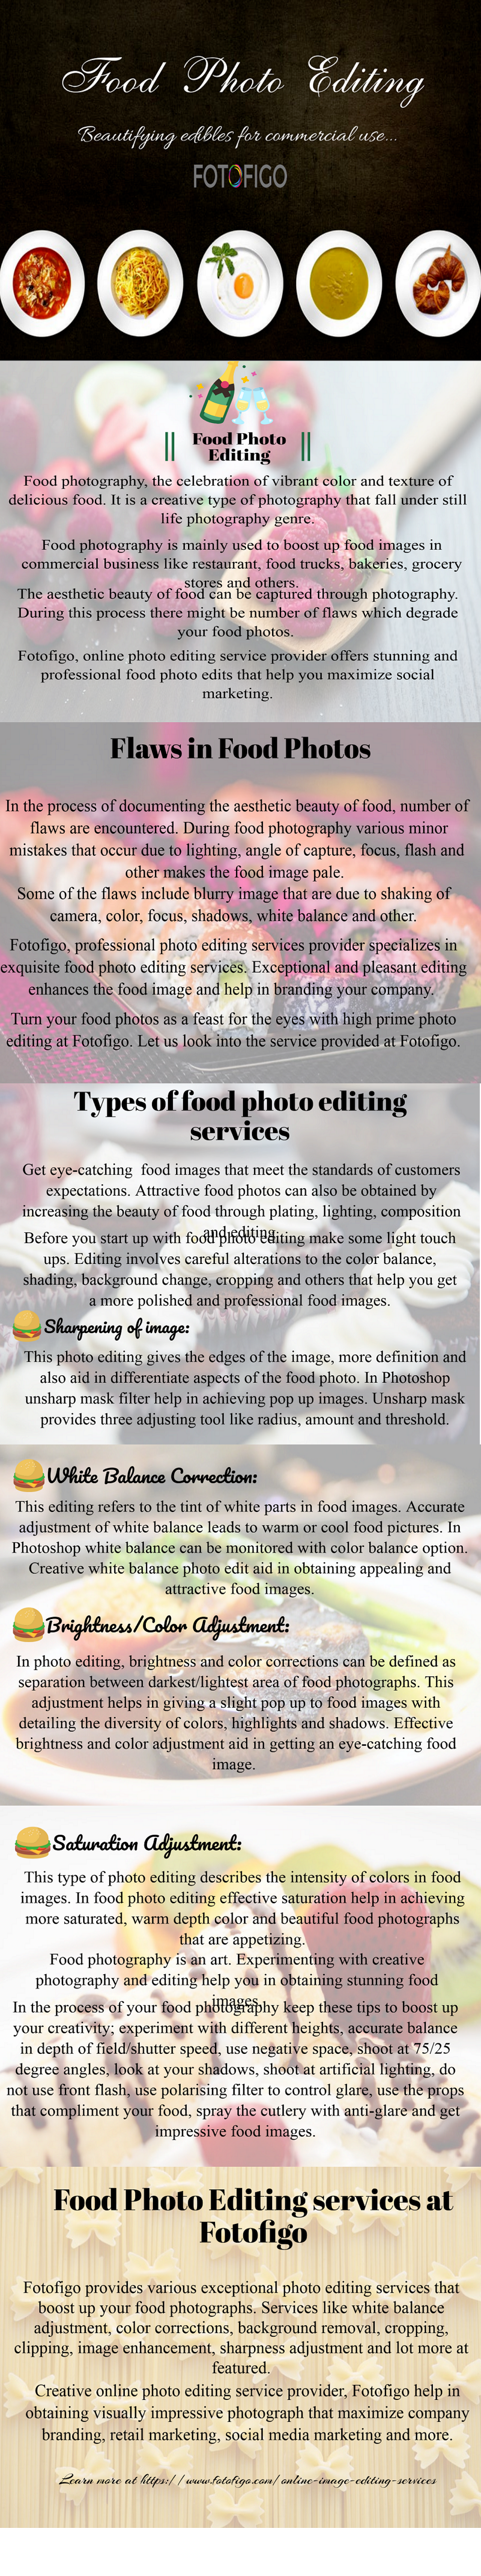 Food Photo Editing Services